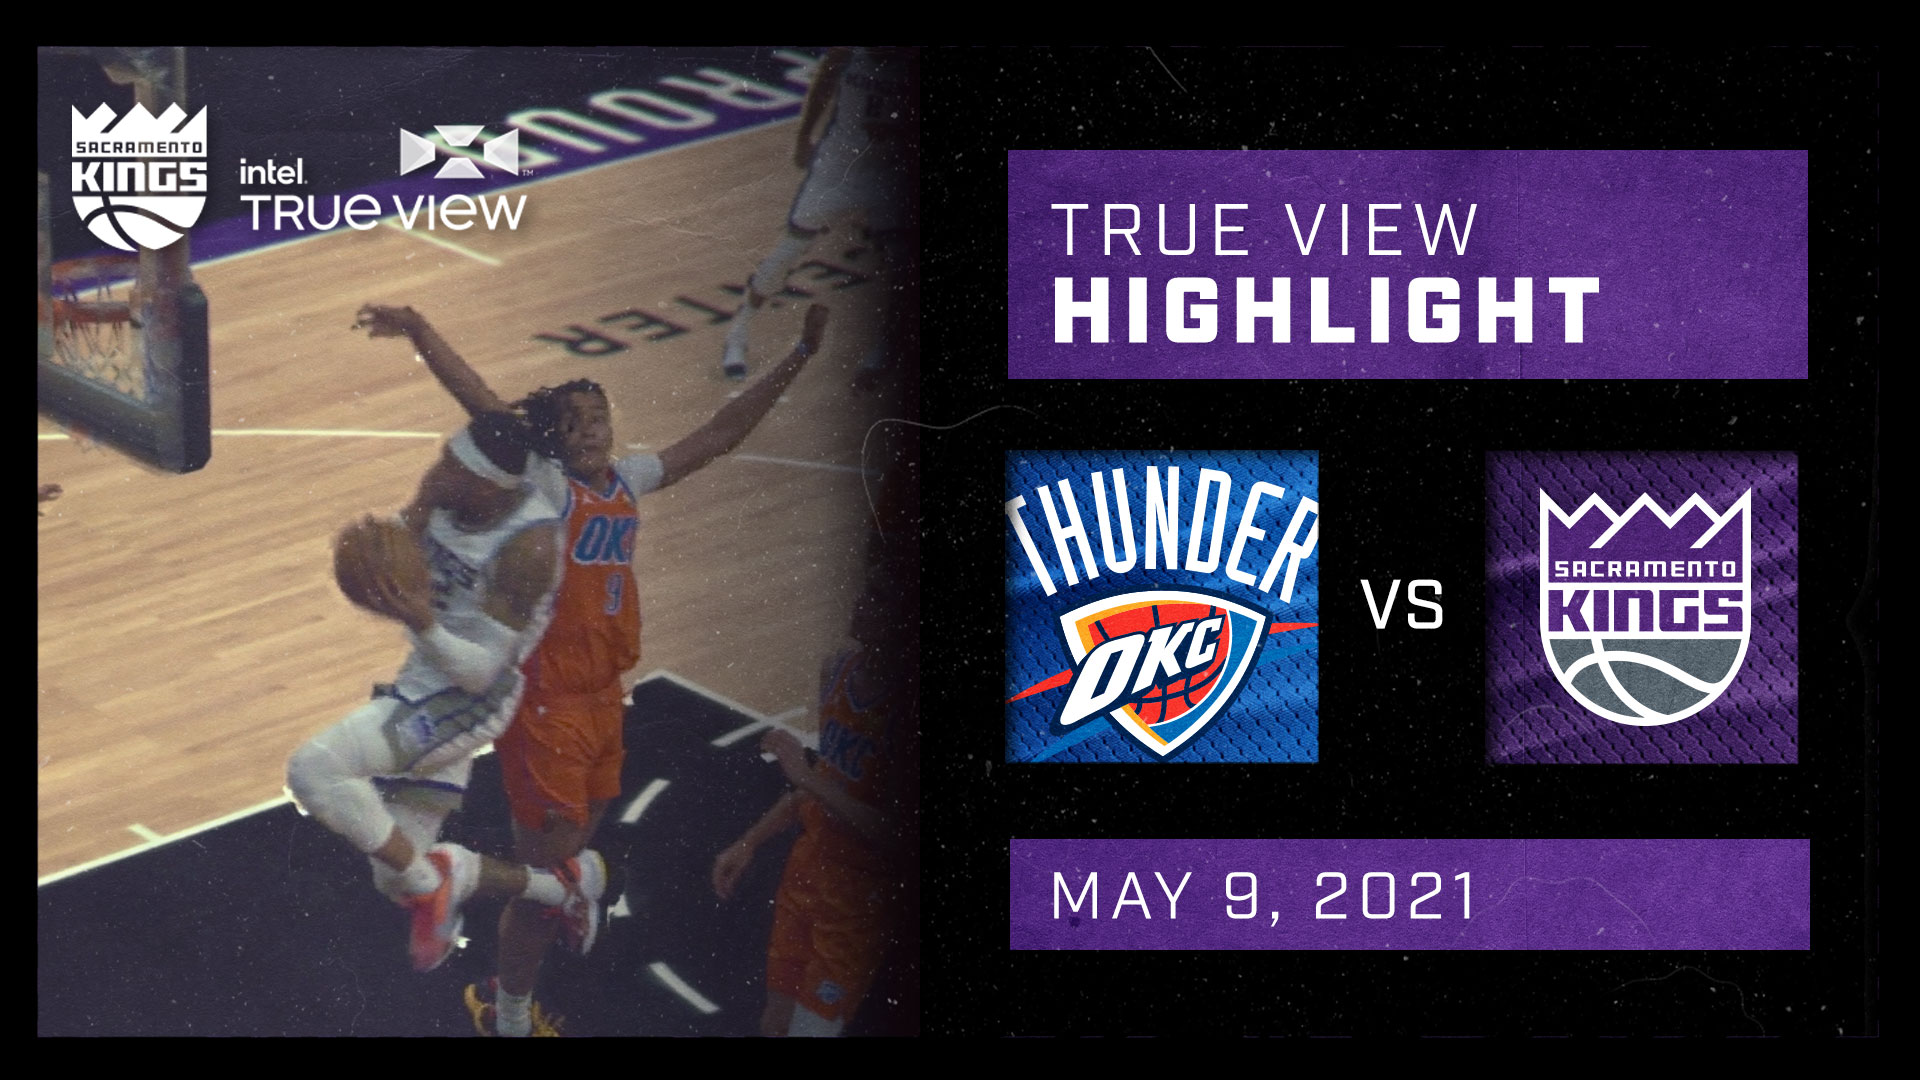 Intel True View Highlight - Holmes Dunk vs Thunder 5.9.21